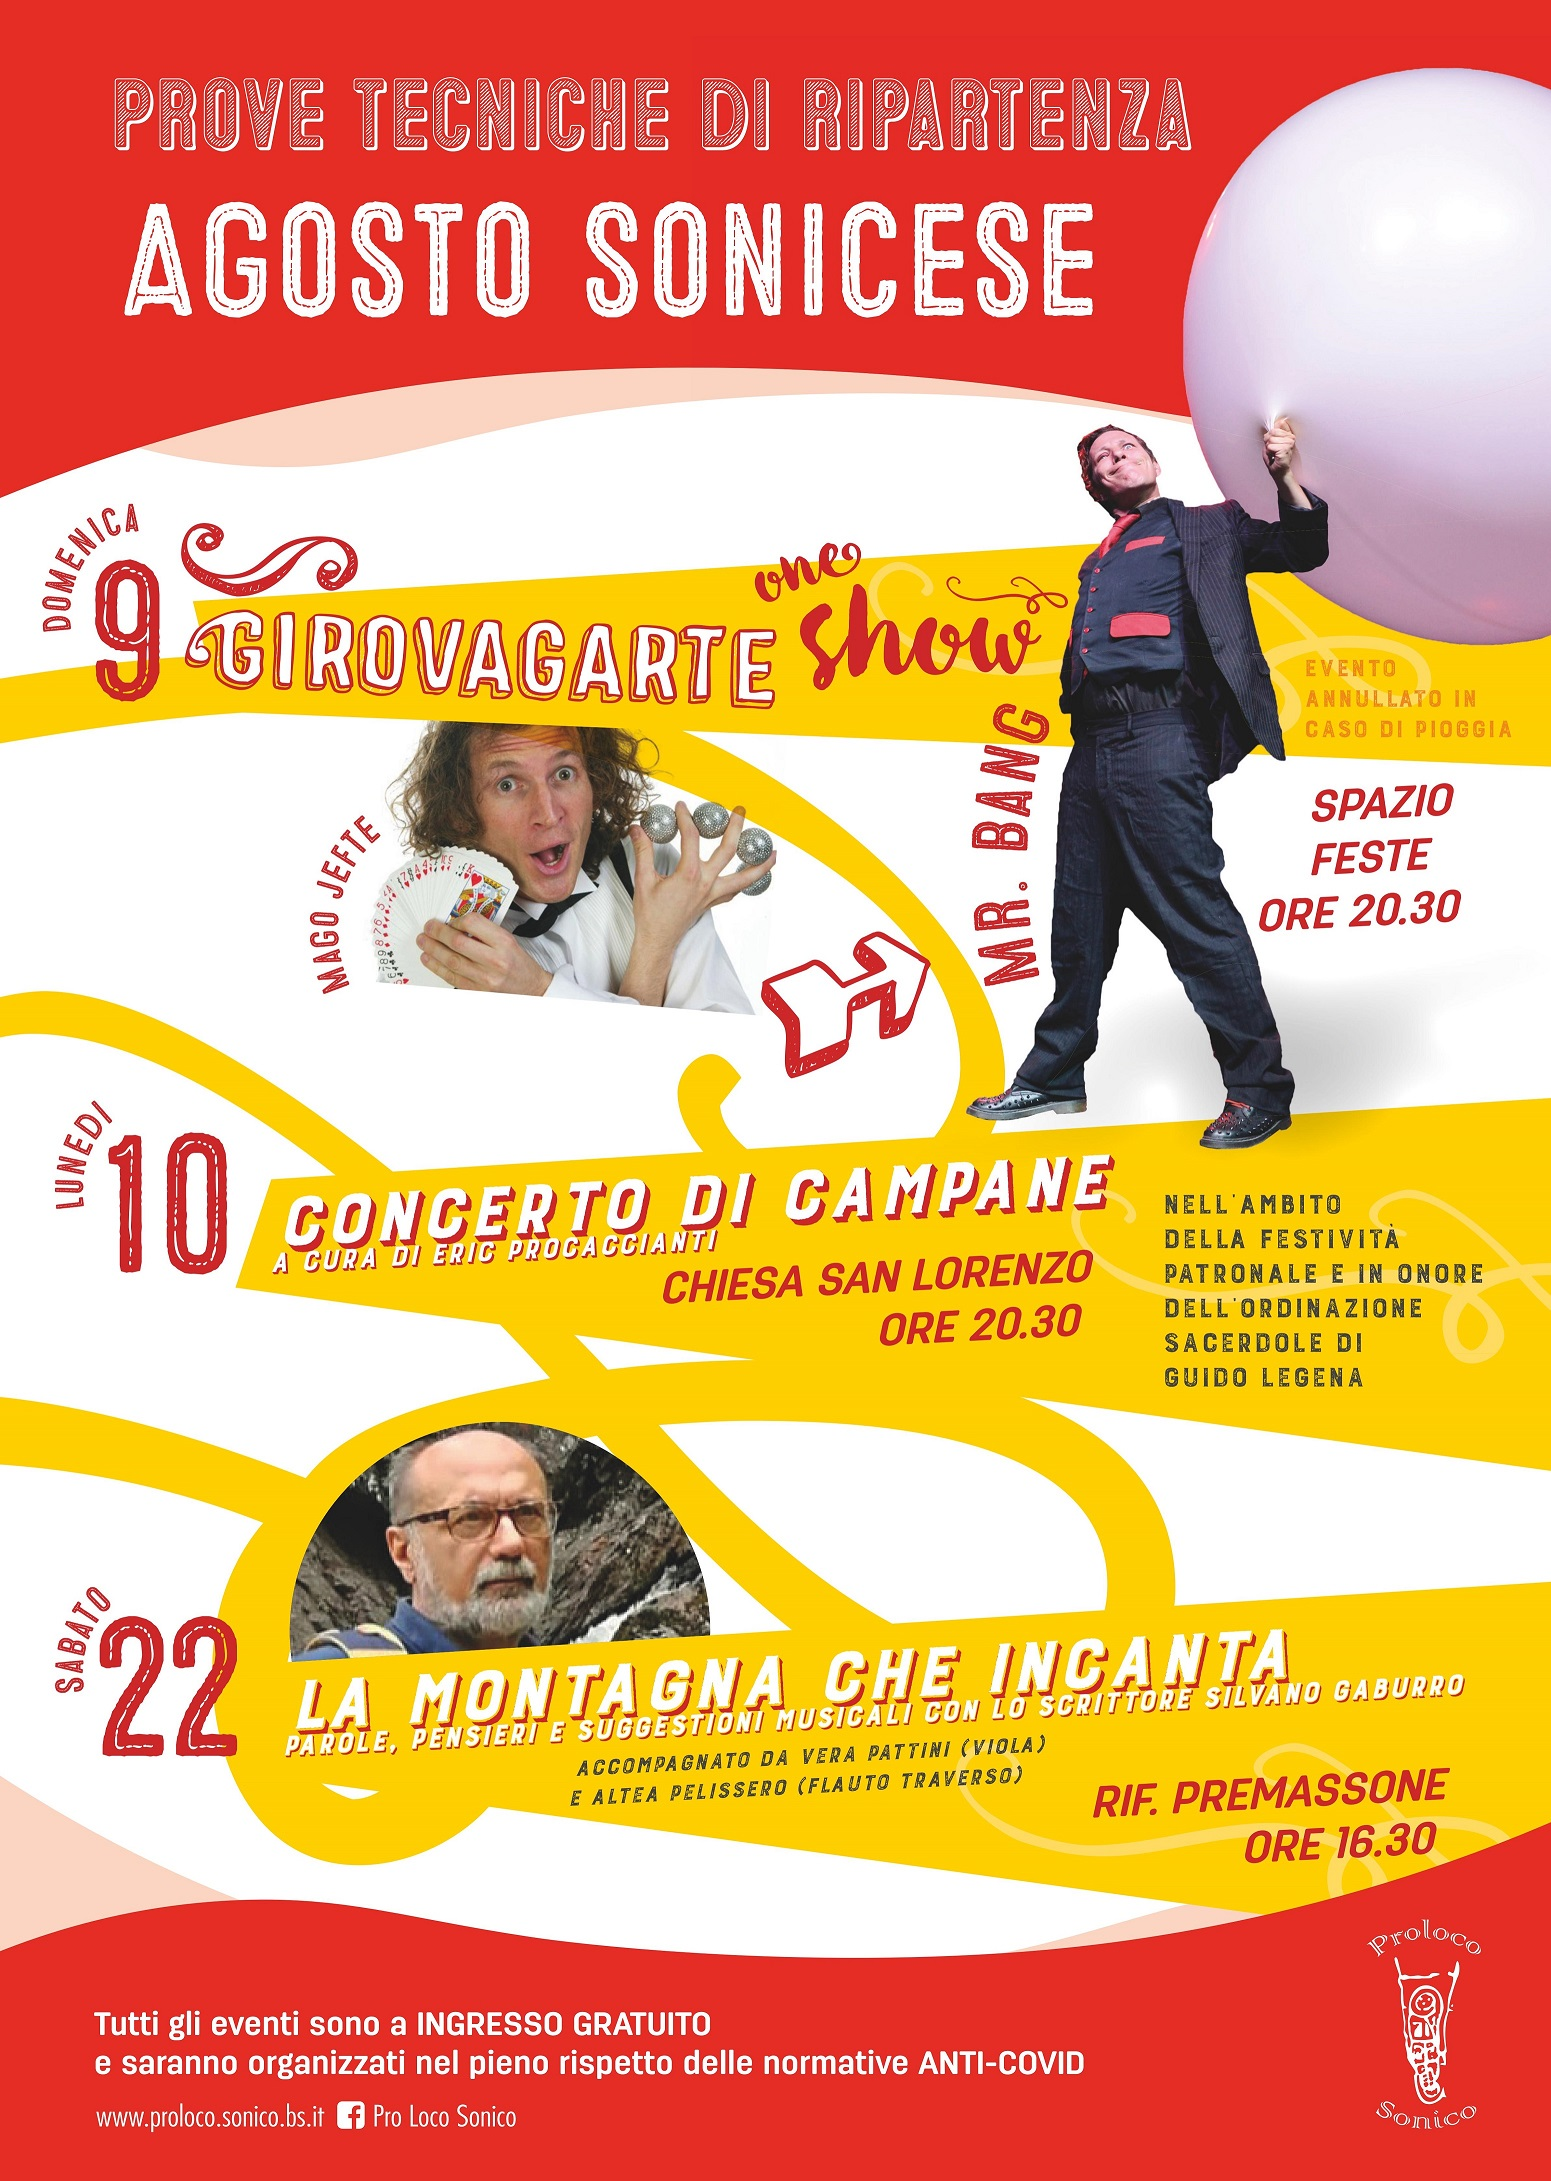 Agosto sonicese